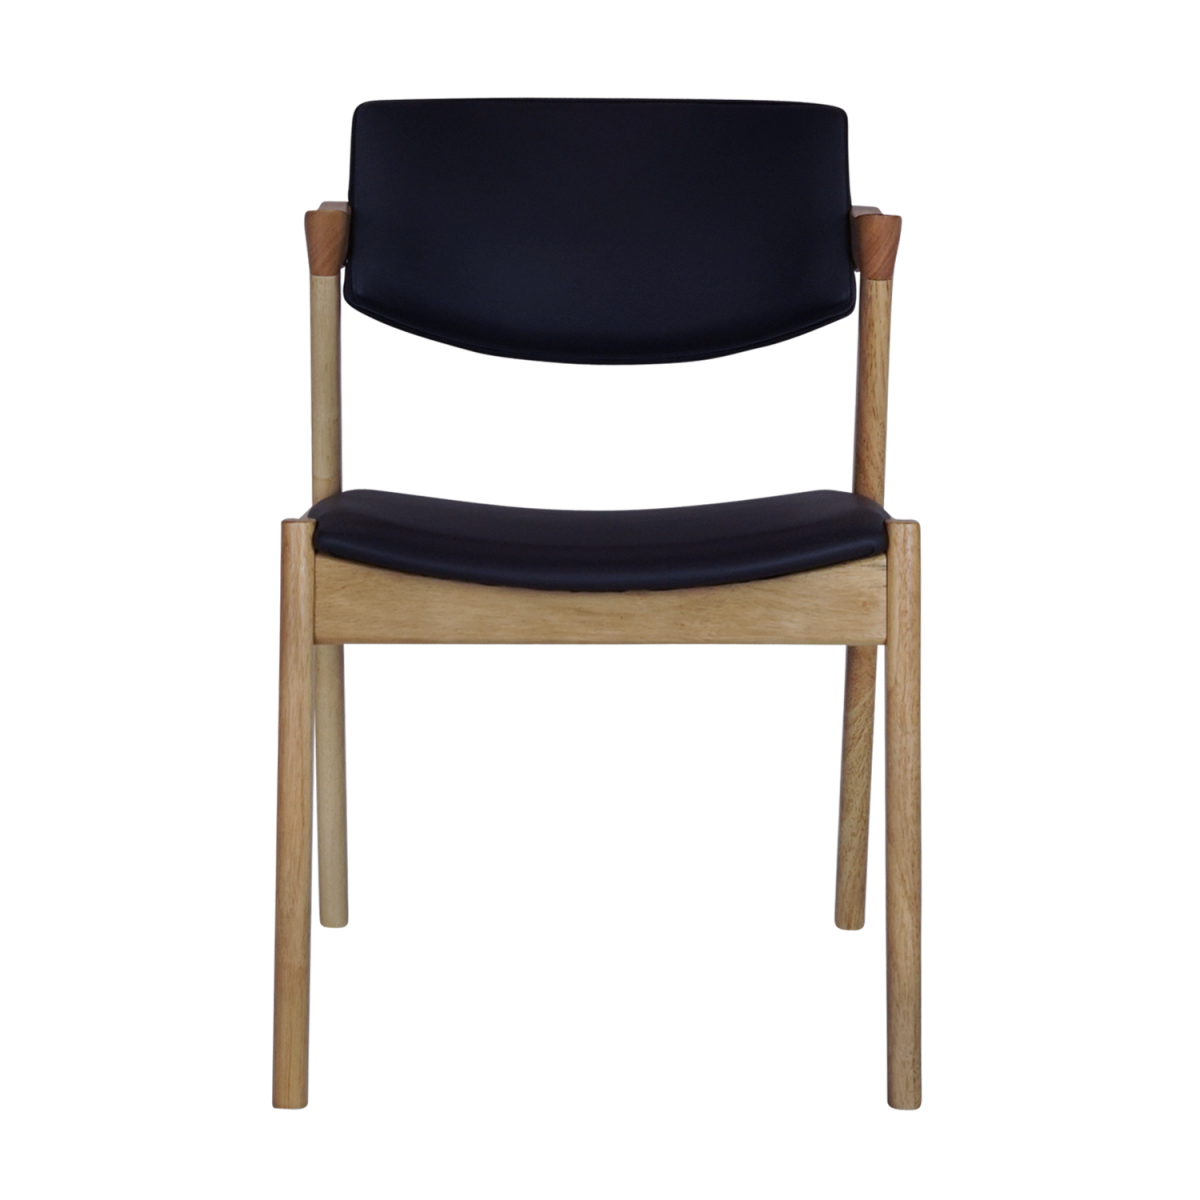 Double Star Furniture- Brandon Dining Chair